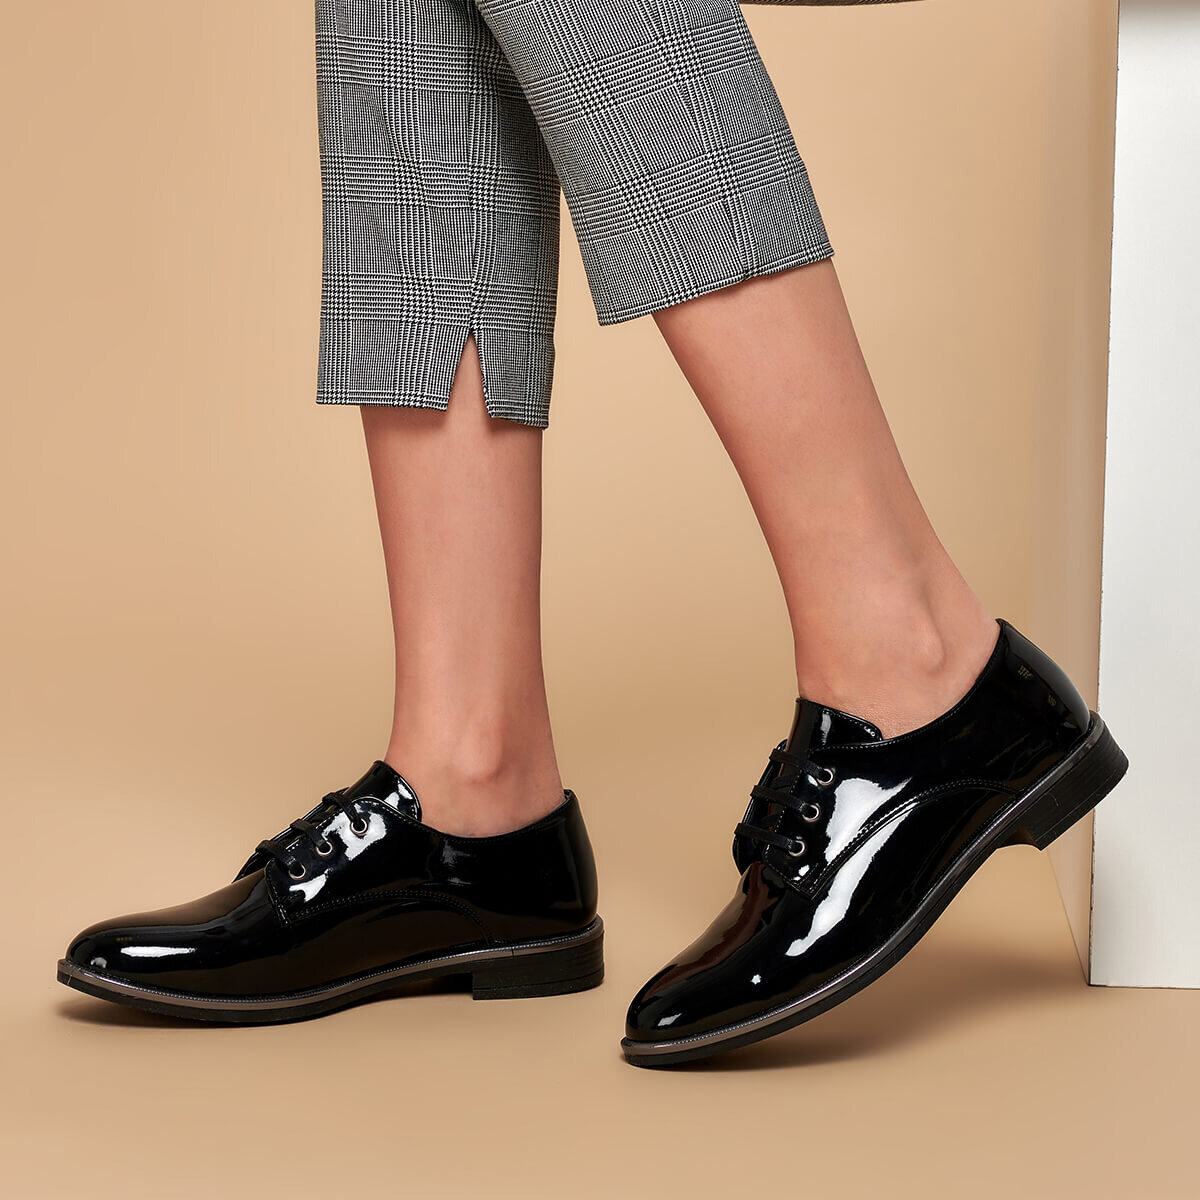 FLO 19K-198 Black Women Oxford Shoes BUTIGO